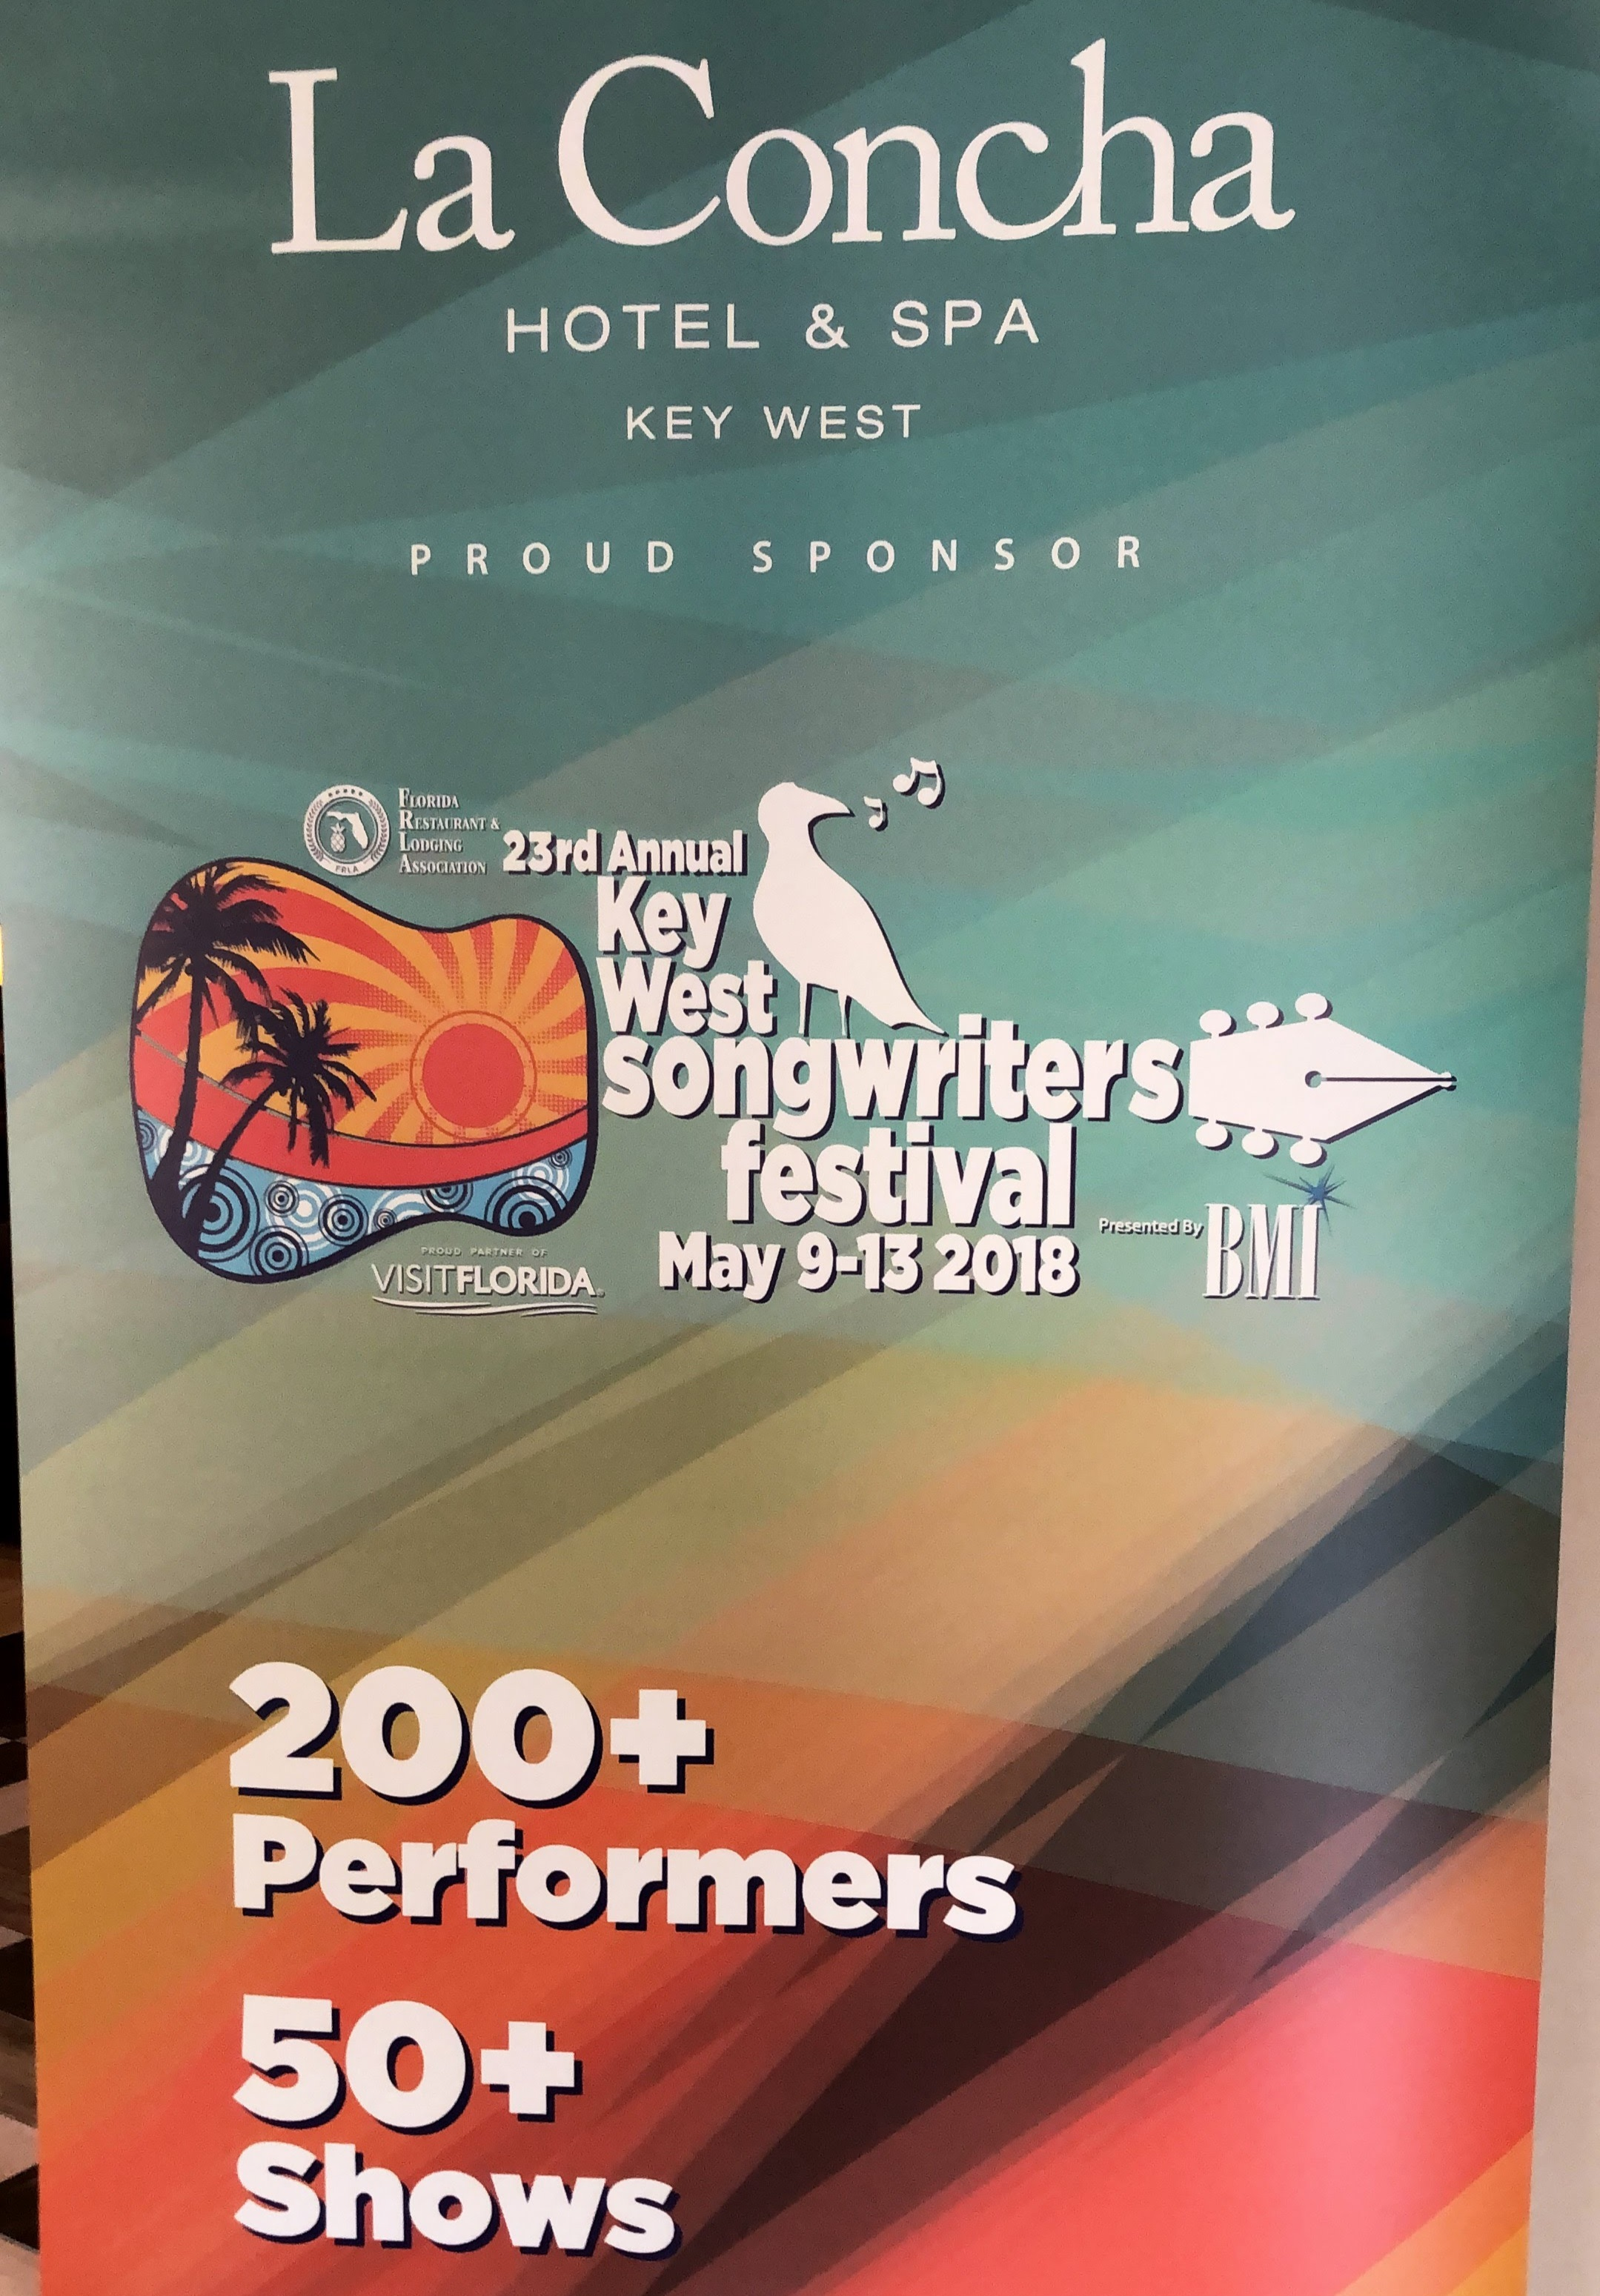 23rd Annual Key West Songwriters Festival – May 9th-13th, 2018 - We didn't realize this until we got there, but the week we went down was the Key West Songwriters' Festival, so we got to check out so much live music at night! I was especially excited to see Carolina Story, and I heard that Florida Georgia Line was also here. Apparently this is a huge event for up-and-coming country music folks (I'm more of a pop punk girl but I do enjoy more acoustic-y / folksy types of country, as well as some of the popular hits). The festival was really fun to be in town for & I want to go back for it every year.